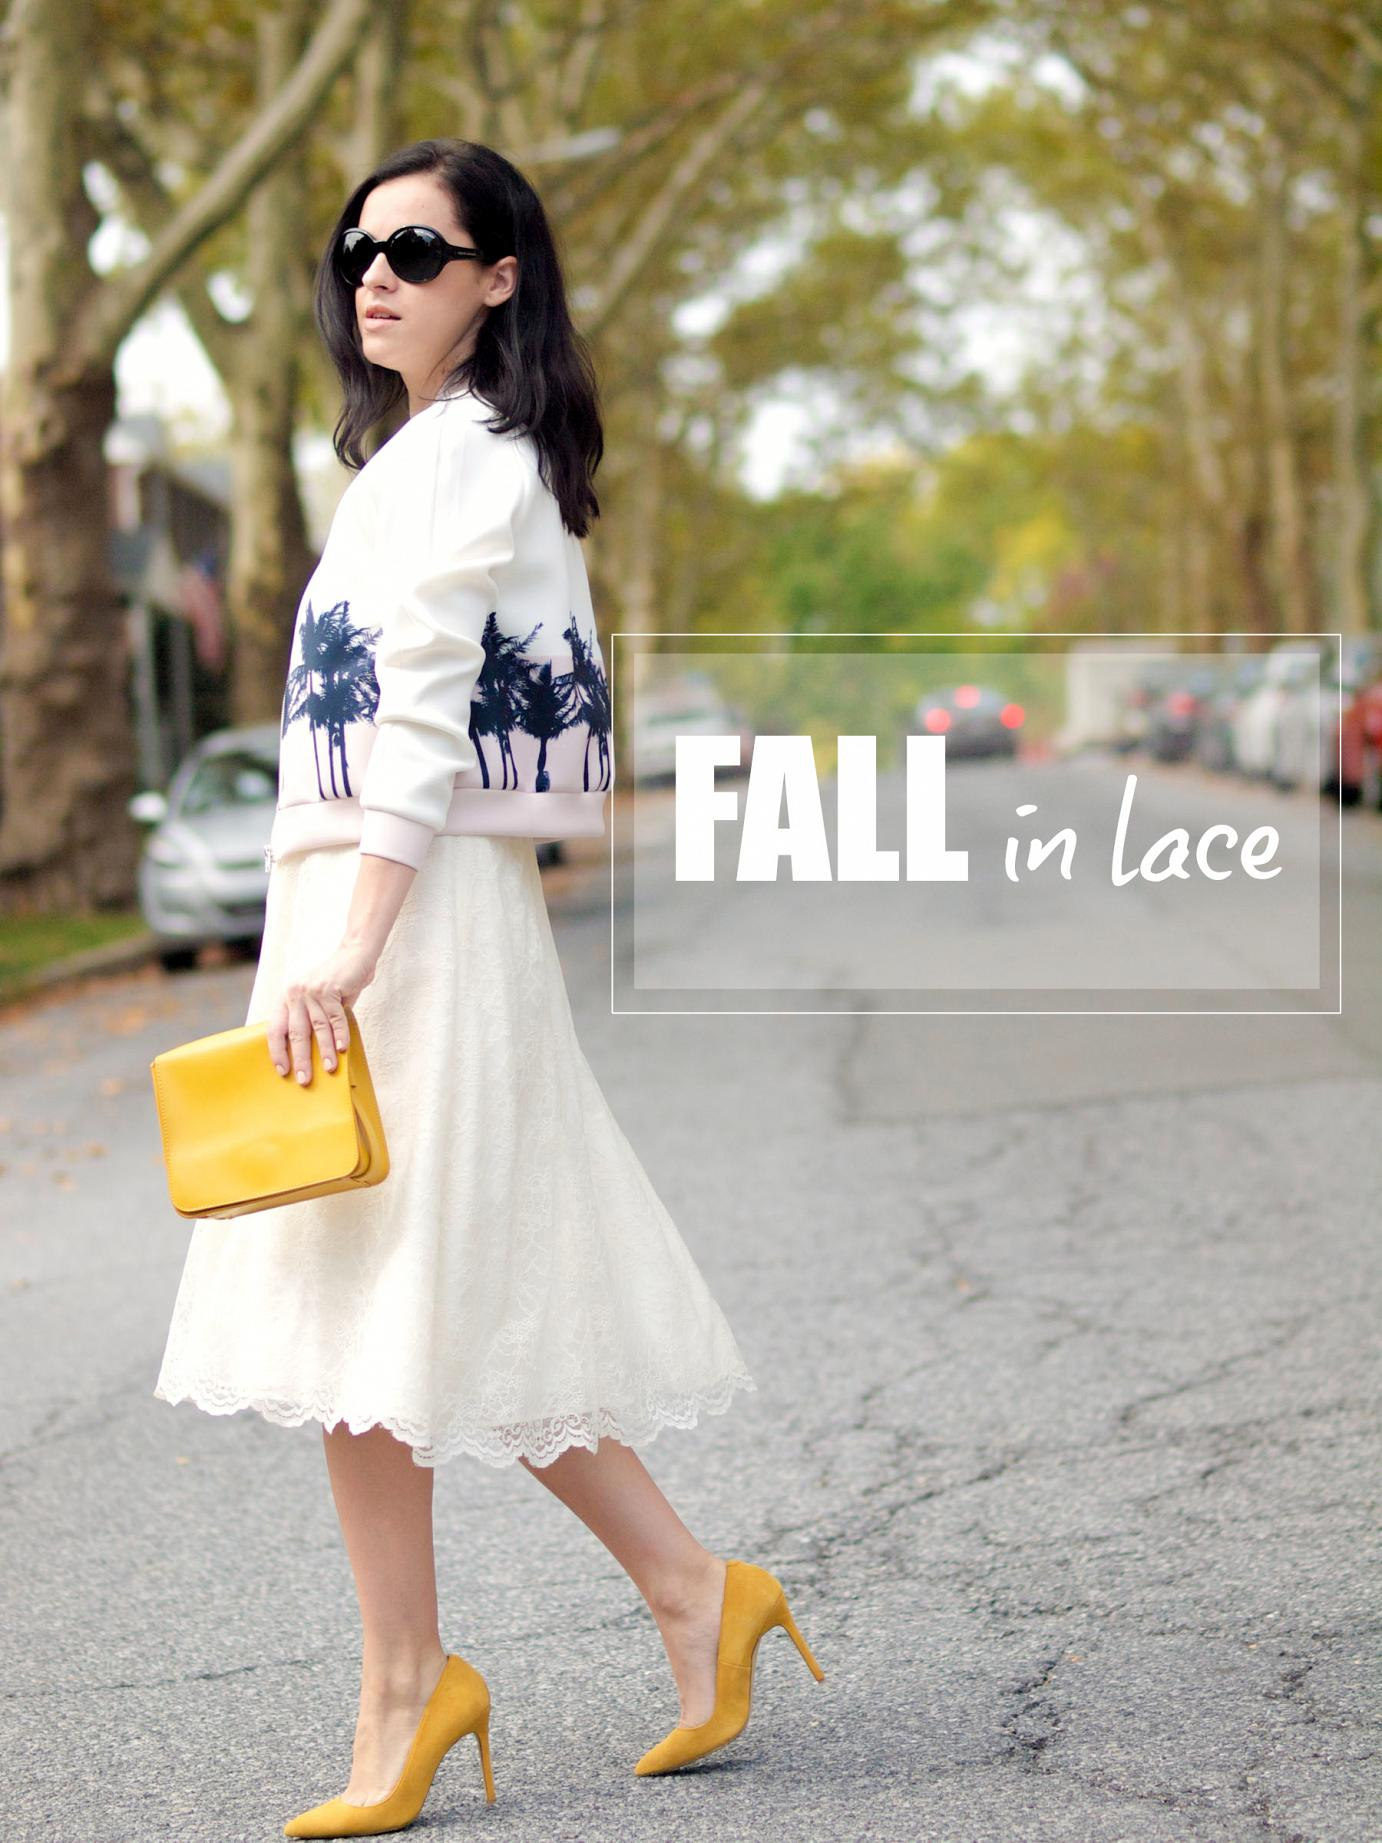 bittersweet colours, street style, fall trends, lace skirt, lace trend, yellow shoes, neoprene jacket, maternity style, fall in lace